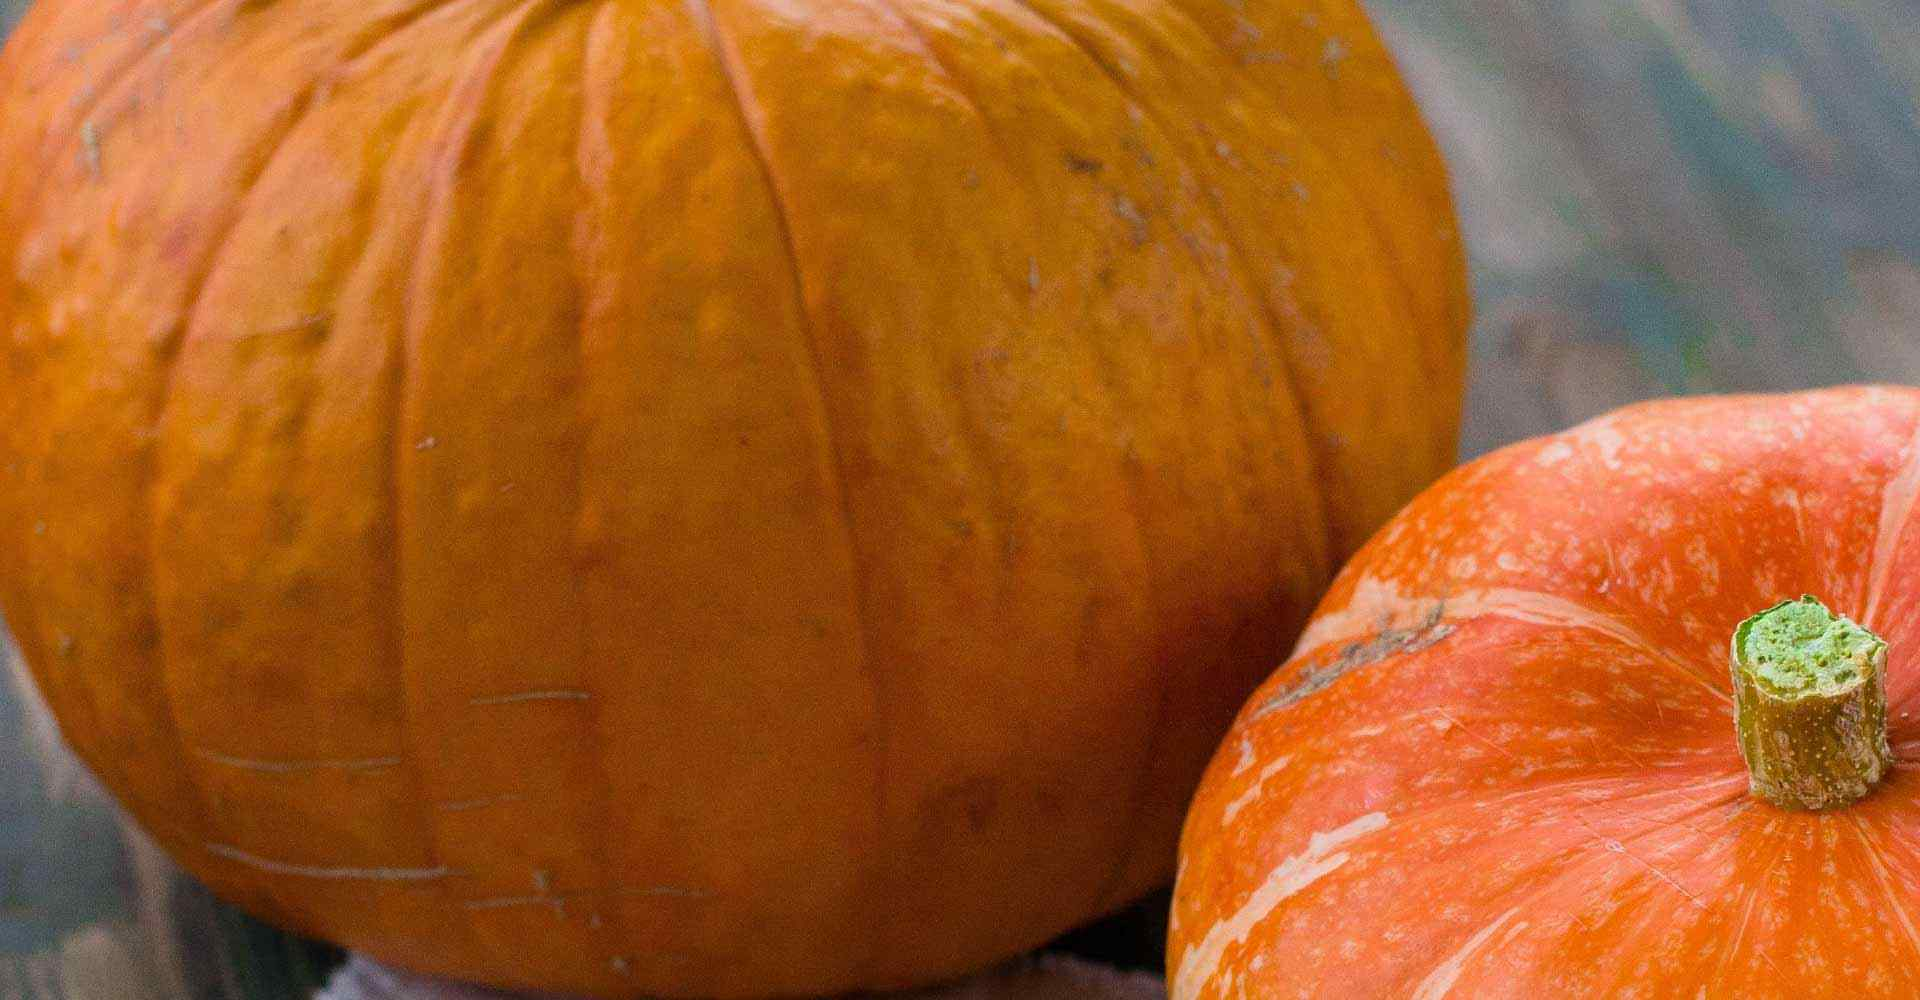 Pumpkins as an emblem of the Thanksgiving, period where a telephone answering service is essential